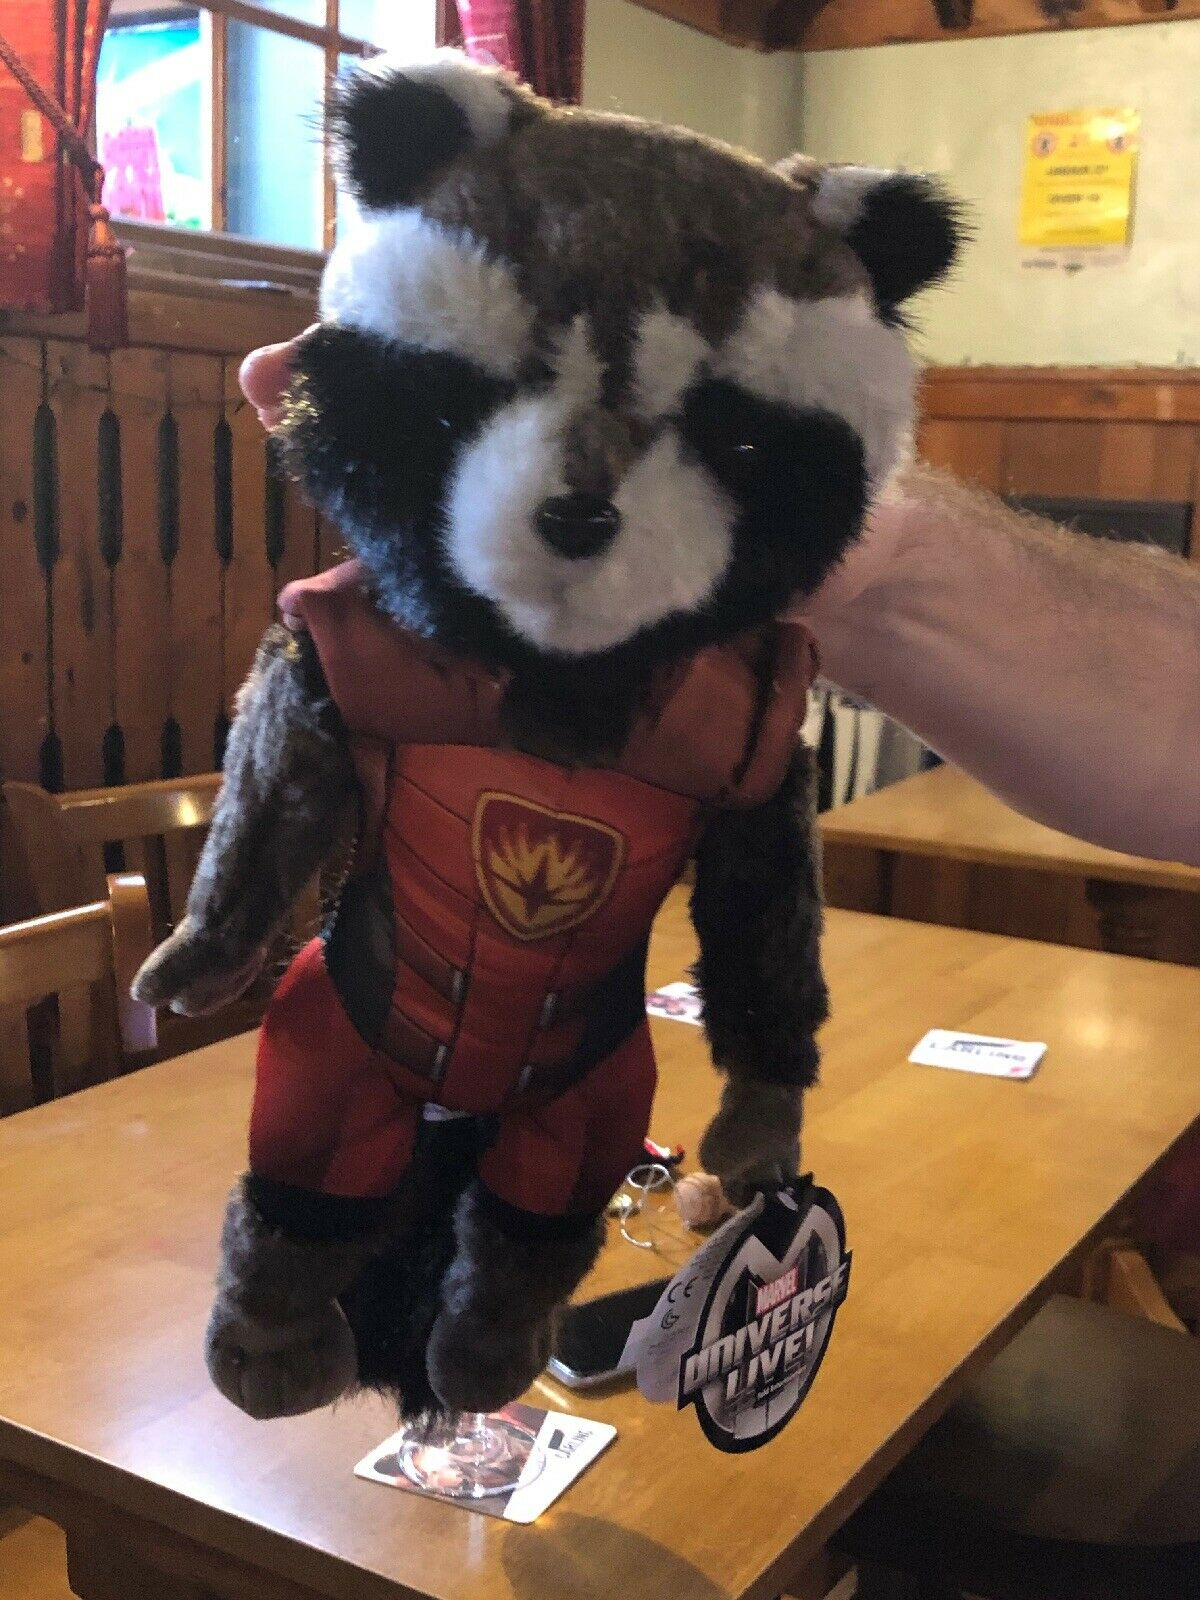 BNWT official merch from Marvel live raccoon plush rrp